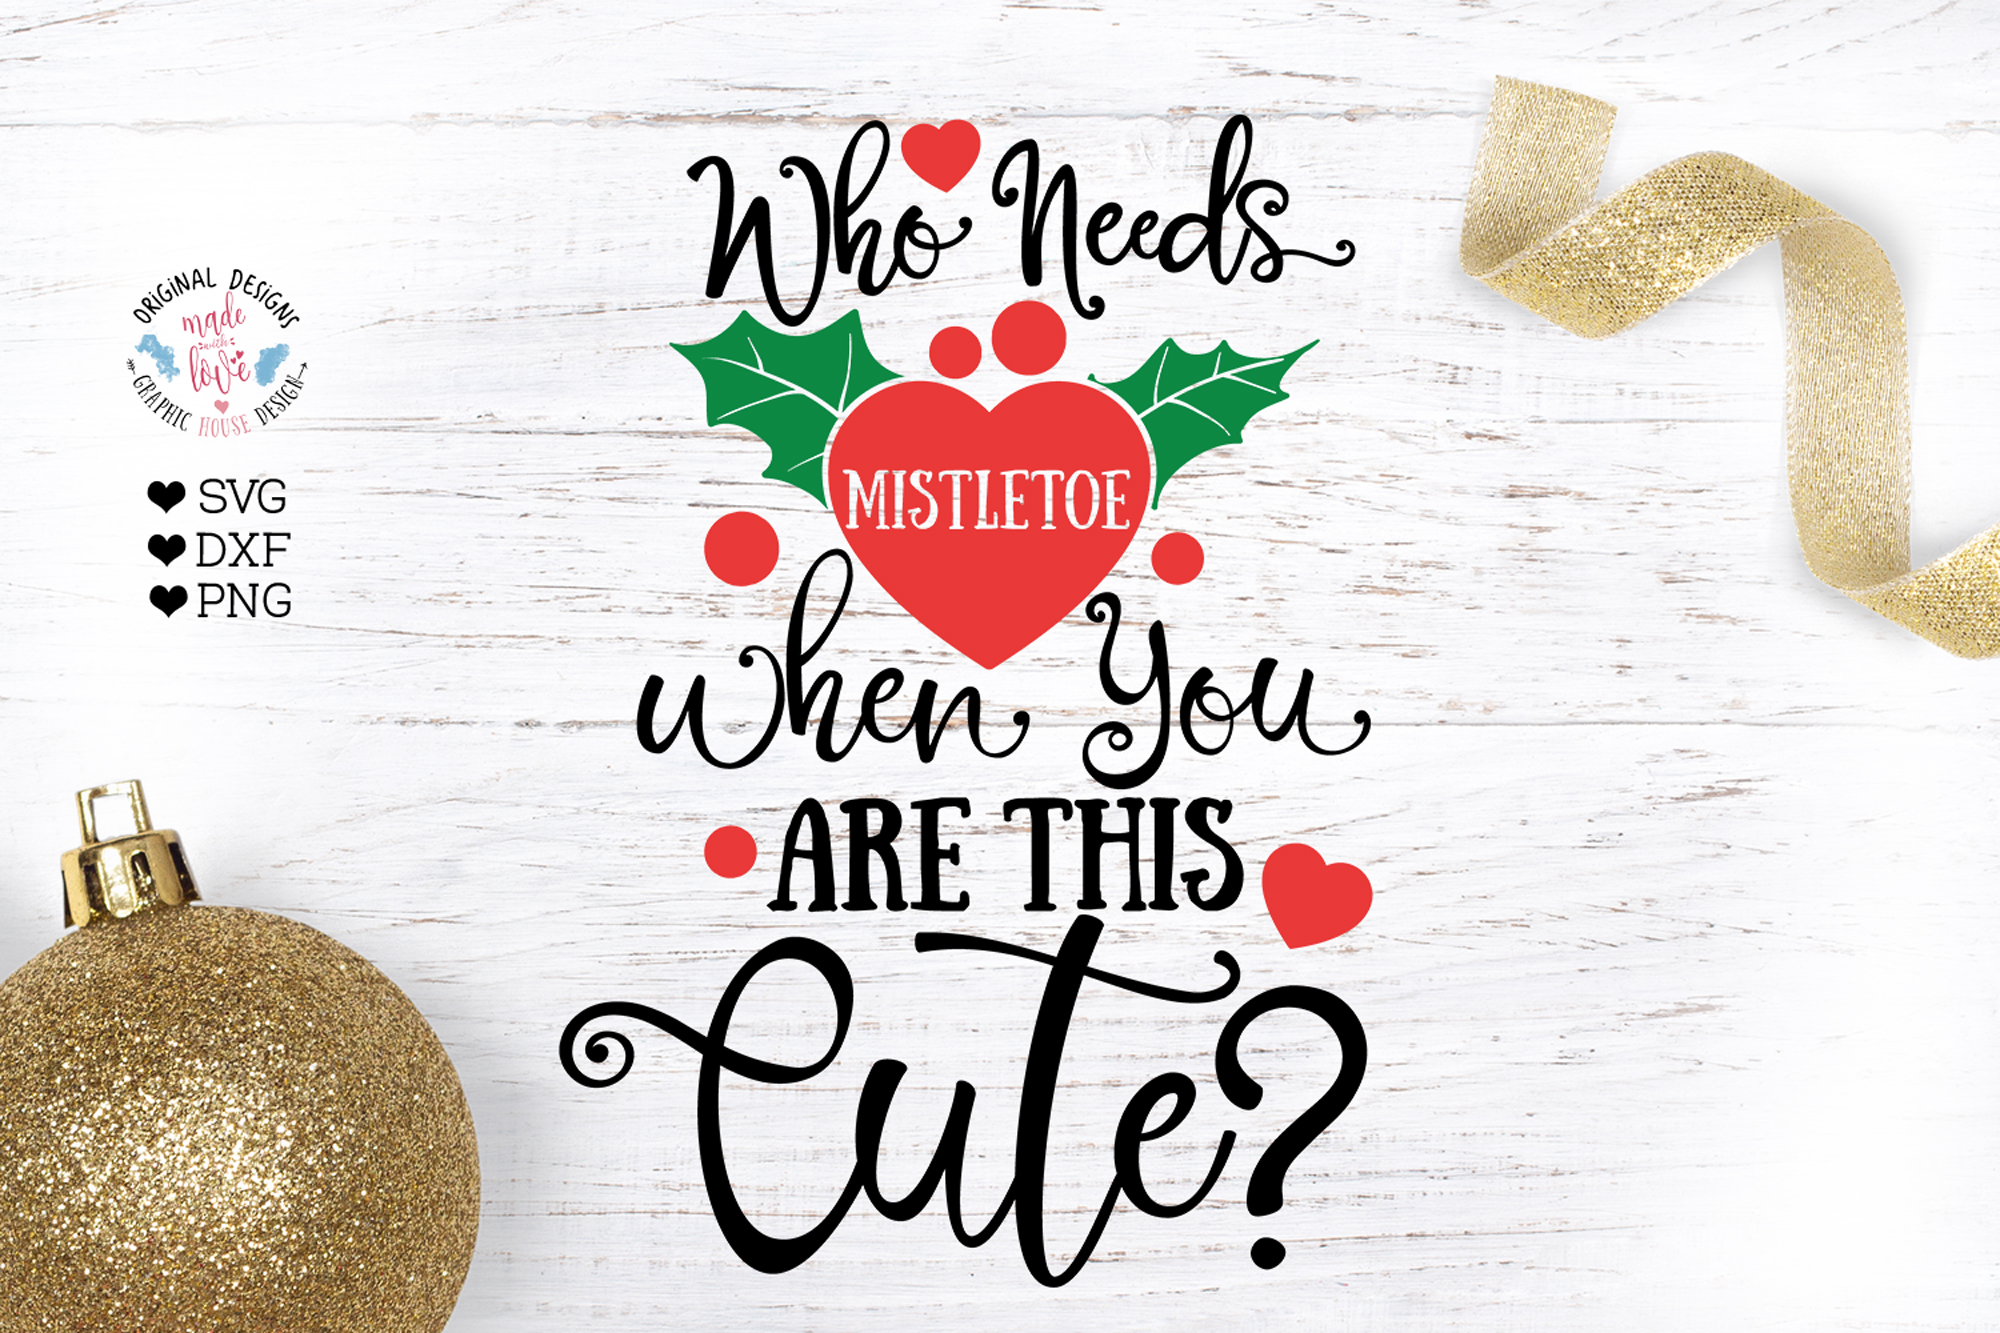 Who needs Mistletoe when you are this cute - Christmas SVG example image 1